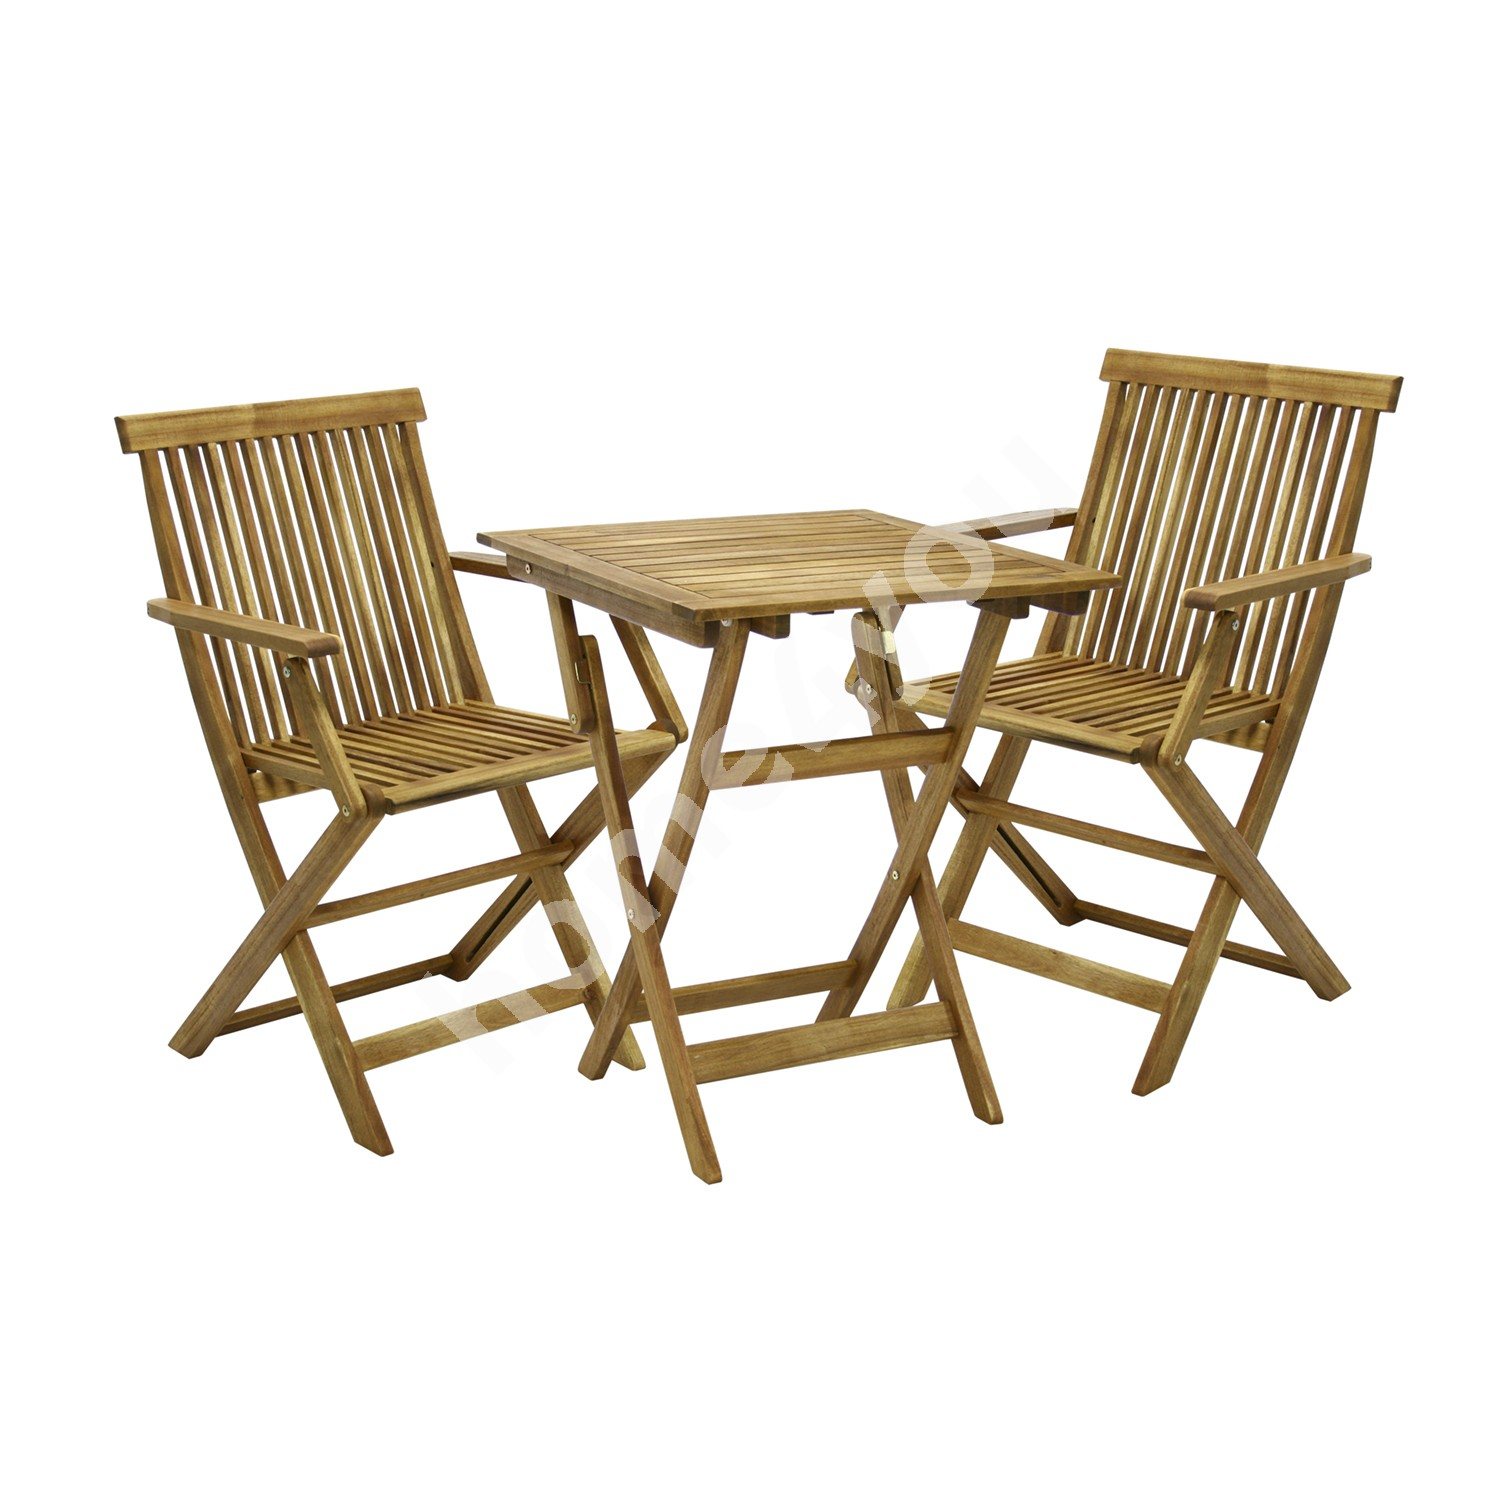 Set FINLAY table and 2 chairs (13182), 60x60xH72cm, foldable, wood: acacia, finish: oiled